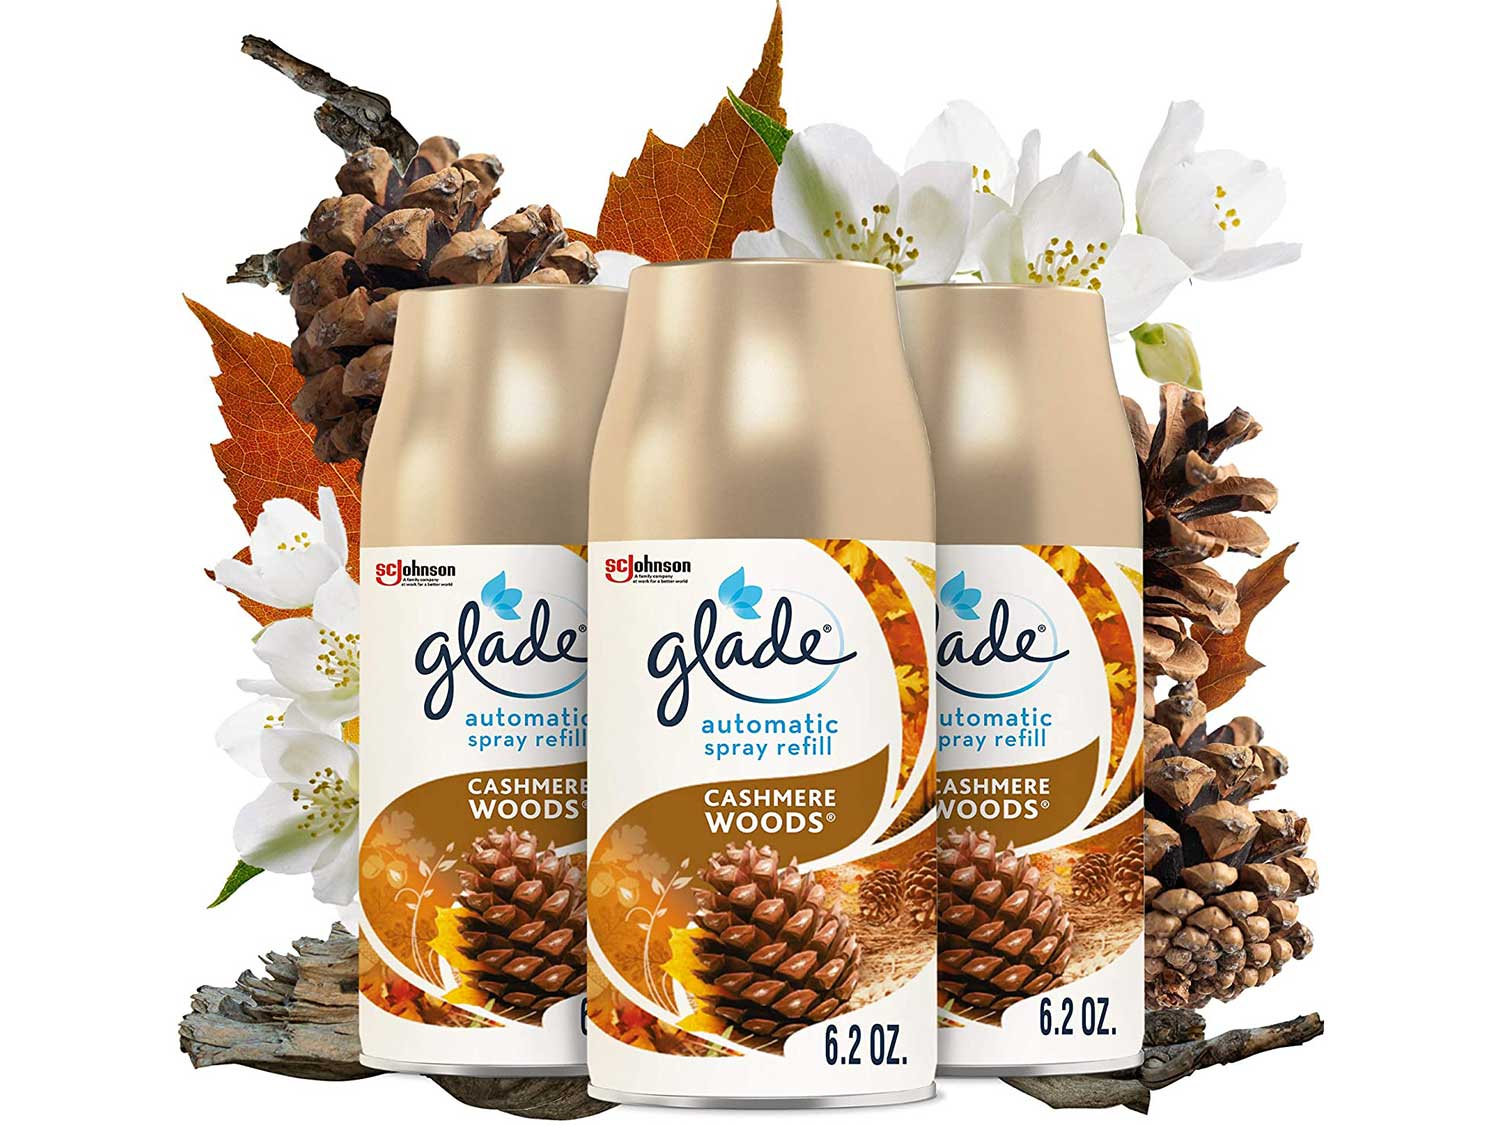 Glade Automatic Spray Refill, Air Freshener for Home and Bathroom, 6.2 Oz, Cashmere Woods, 3 Count